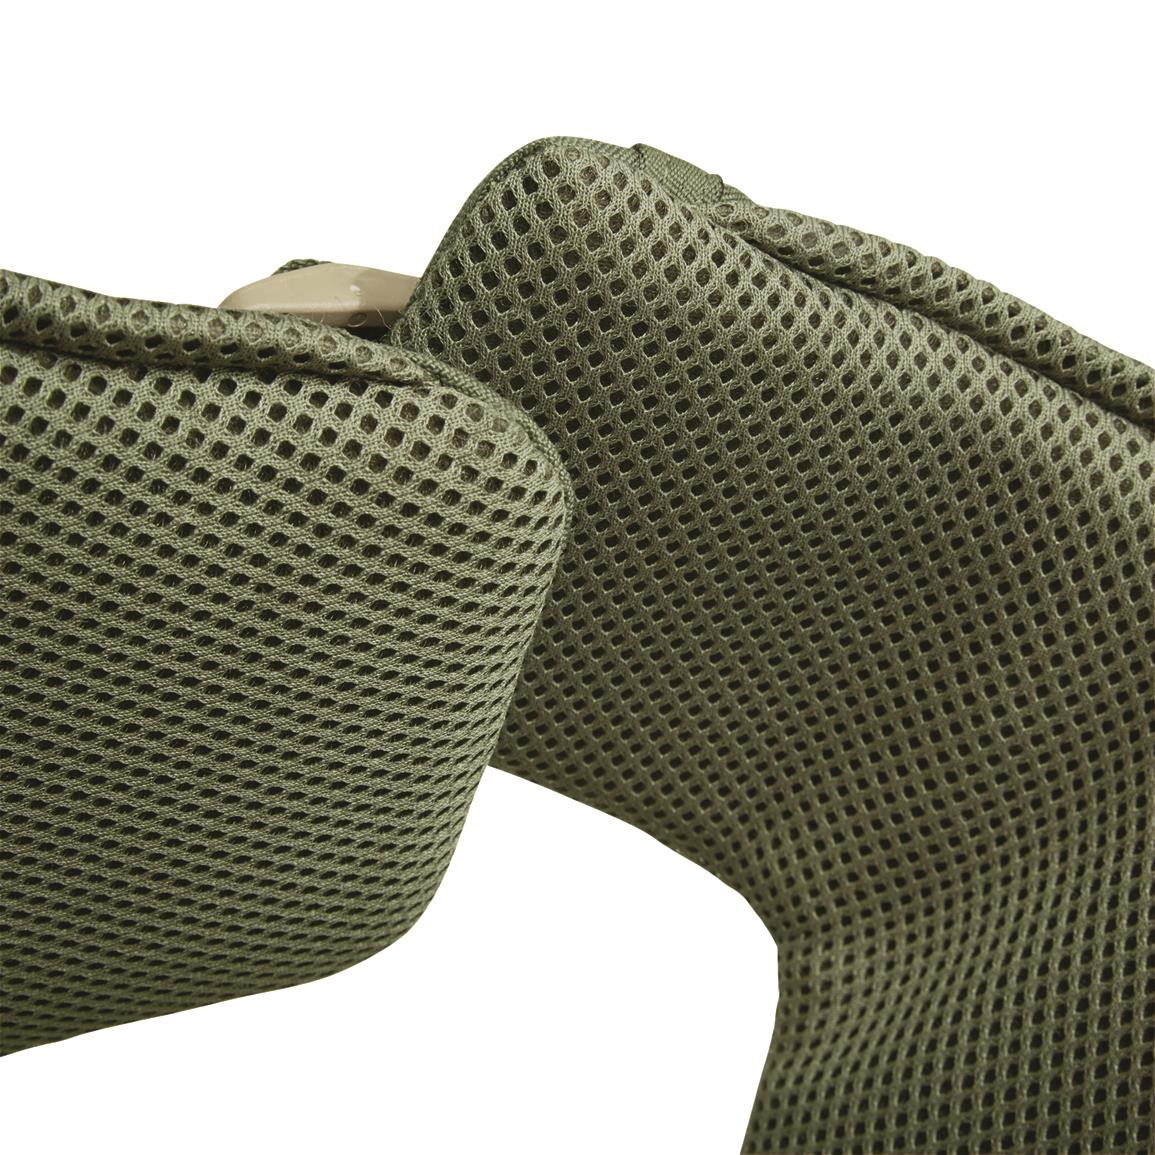 3-D spacer mesh lining keeps your pooch cool